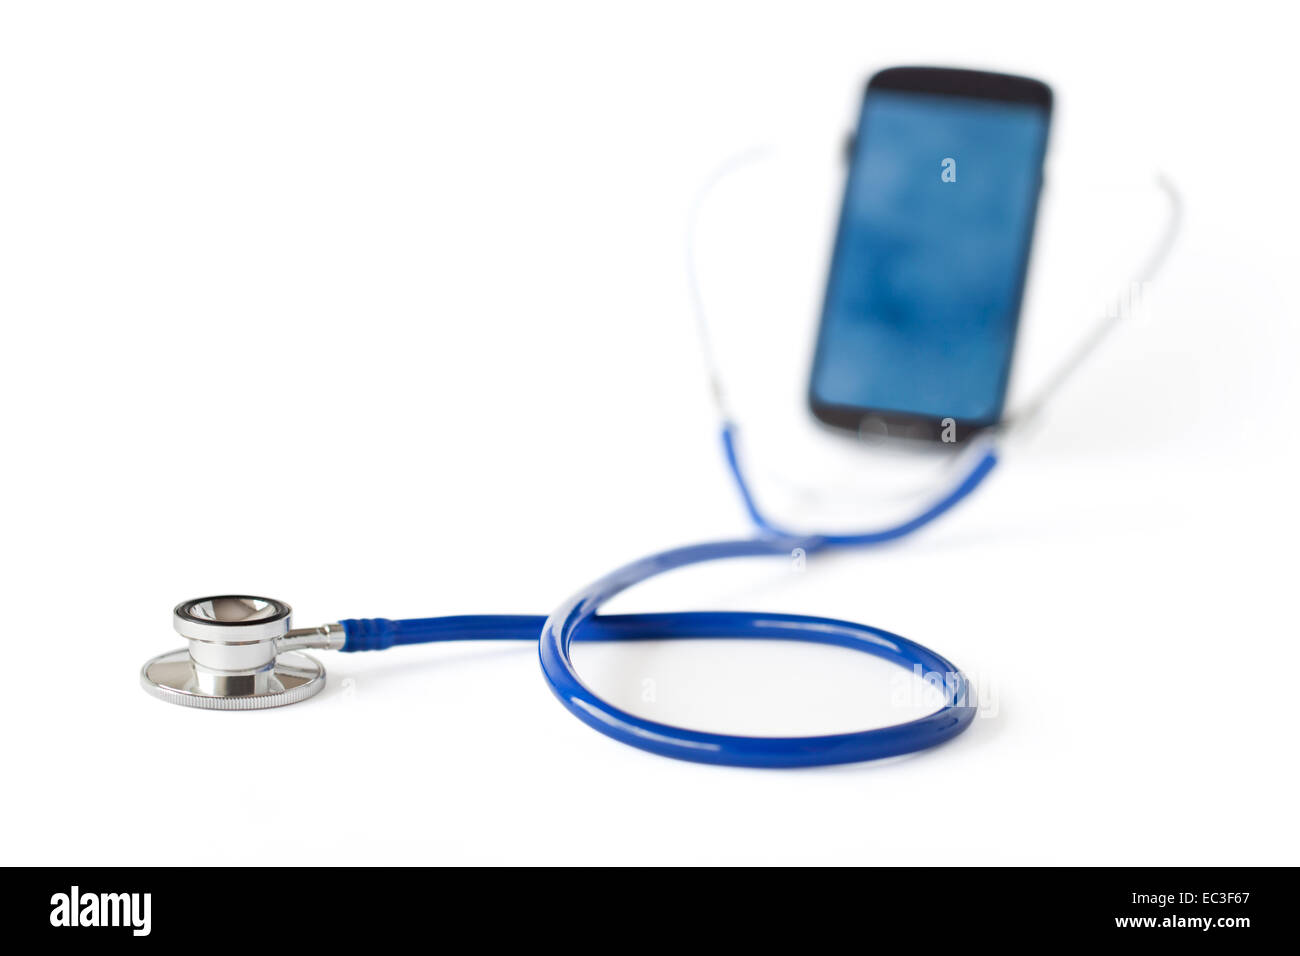 Stethoscope and mobile phone isolated on white background - Stock Image